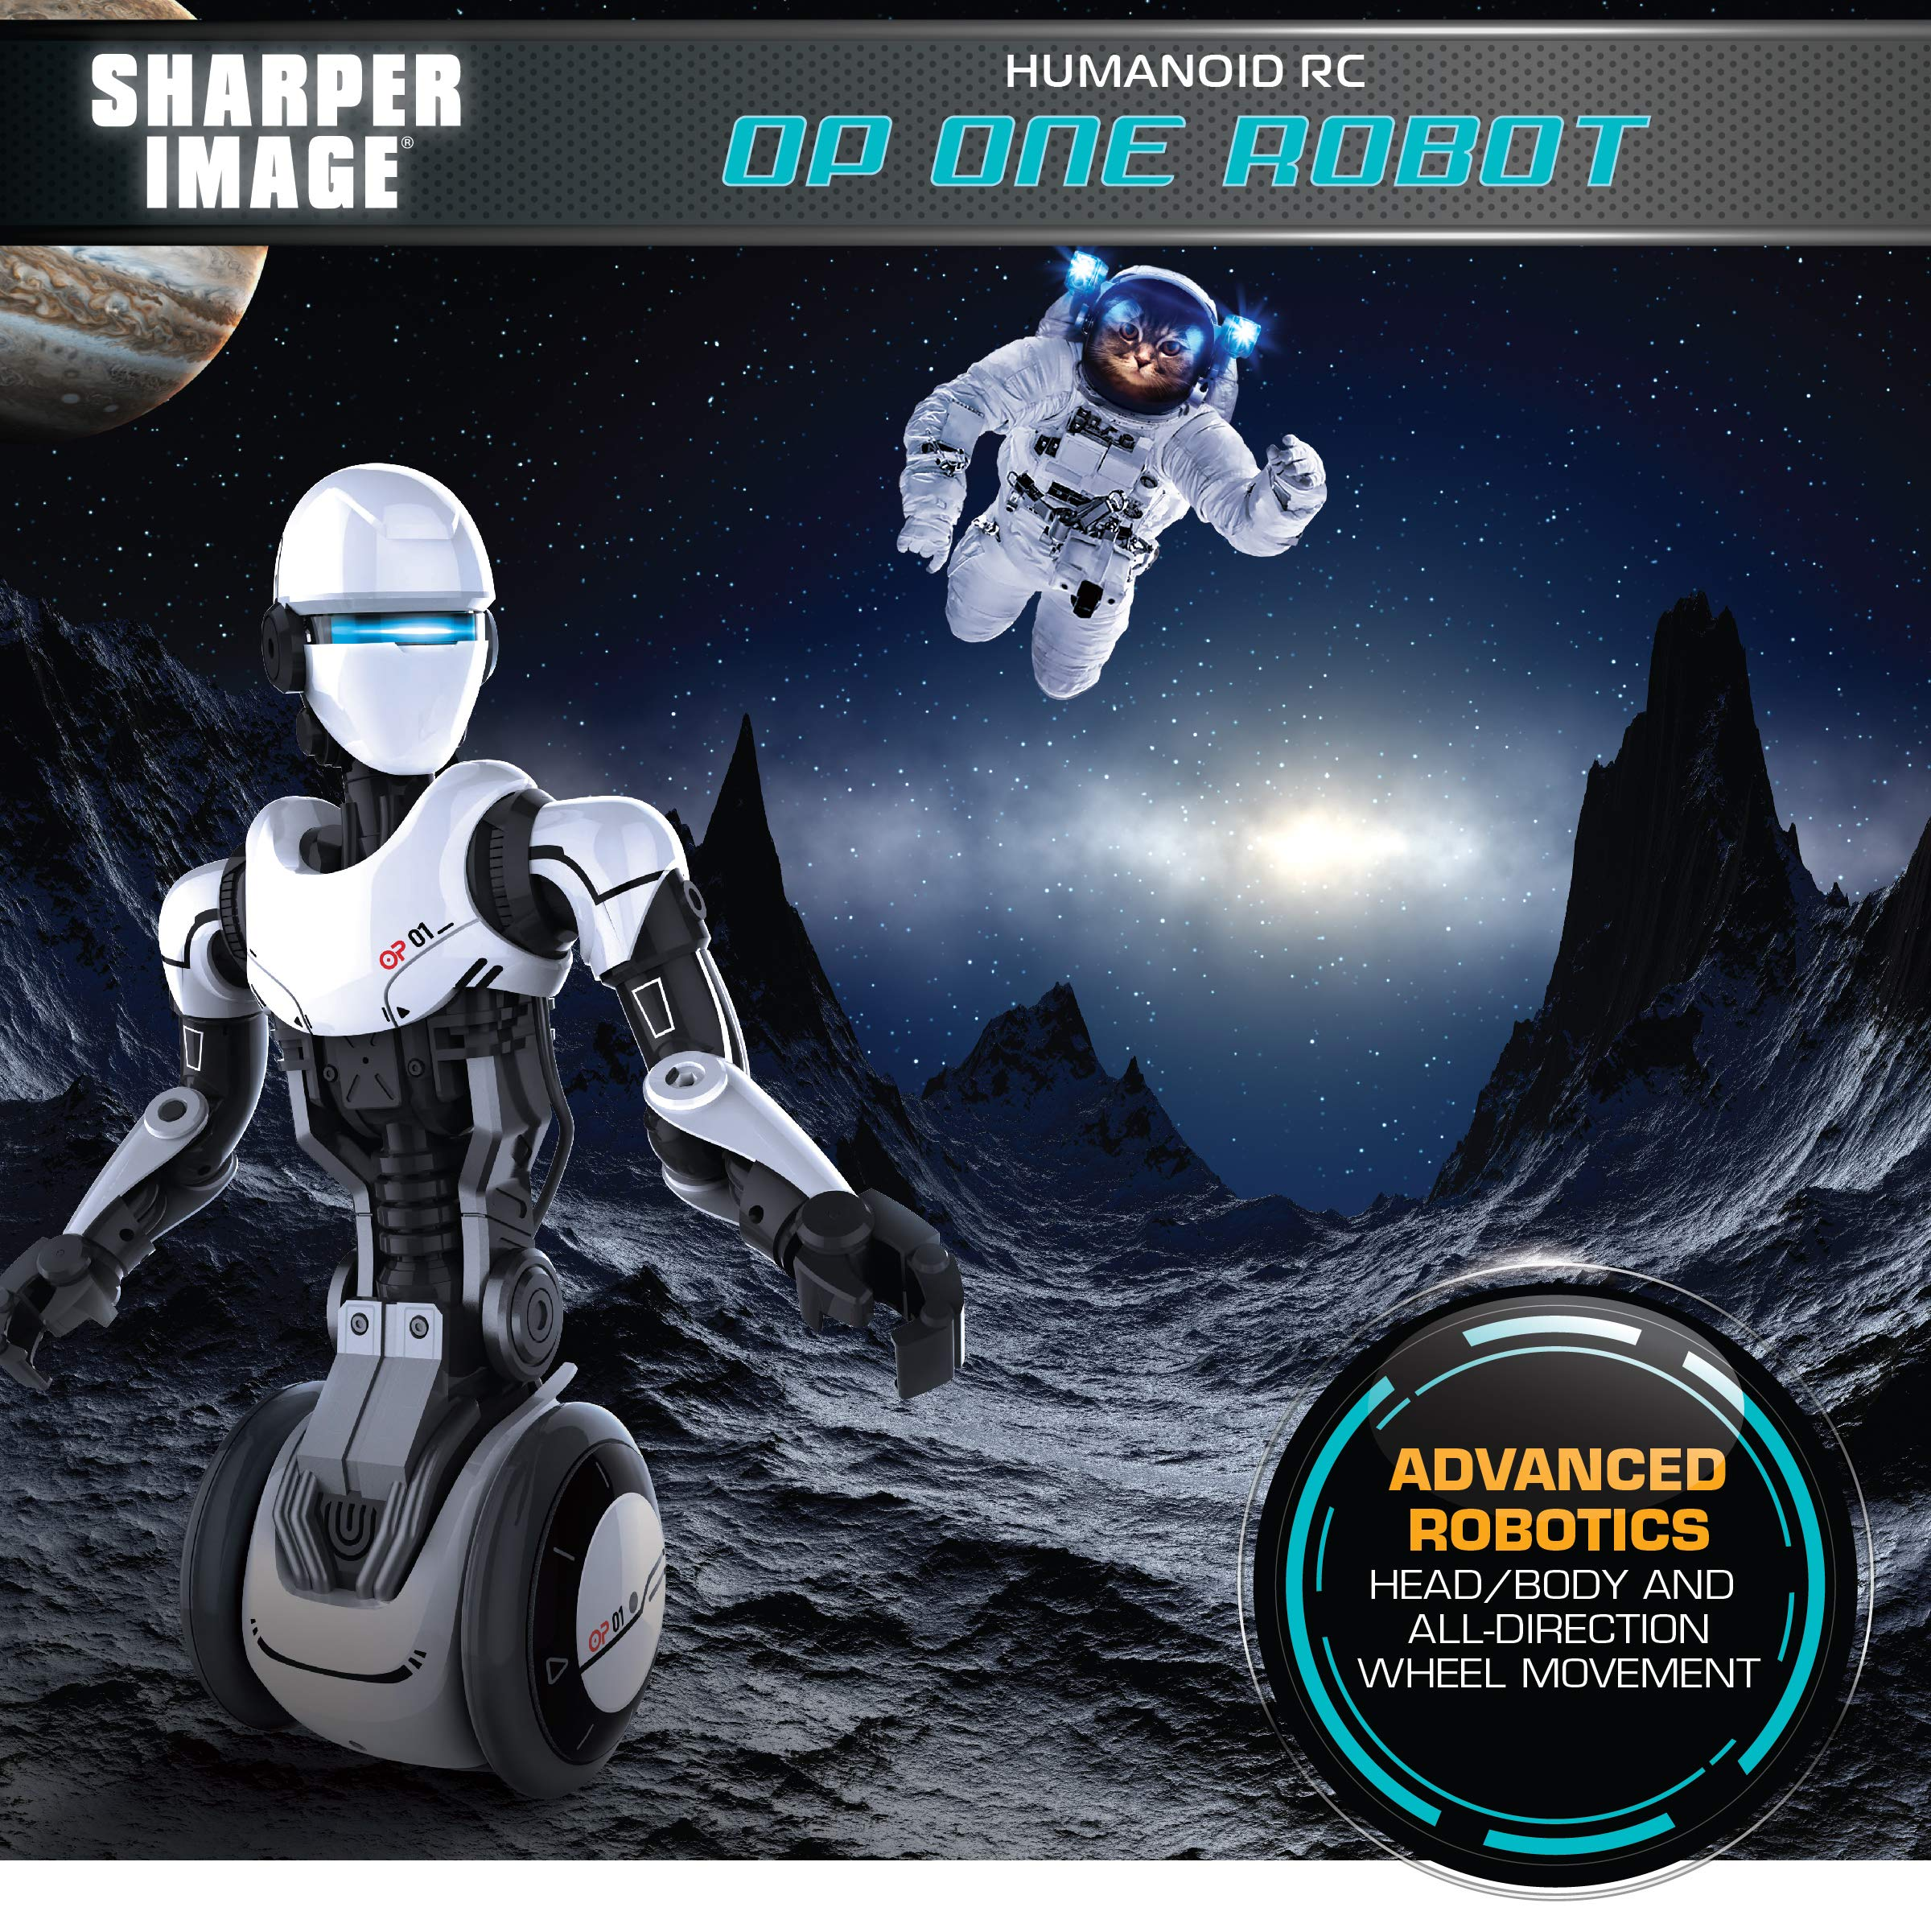 SHARPER IMAGE RC Humanoid OP One Robot, Cool Sci-Fi Android with Moving Arms and Gripping Hands, Dances, Plays, Performs, Spy Mode, Voice, Wireless Control, Full Directional Movement, Battery Power - wiihuu